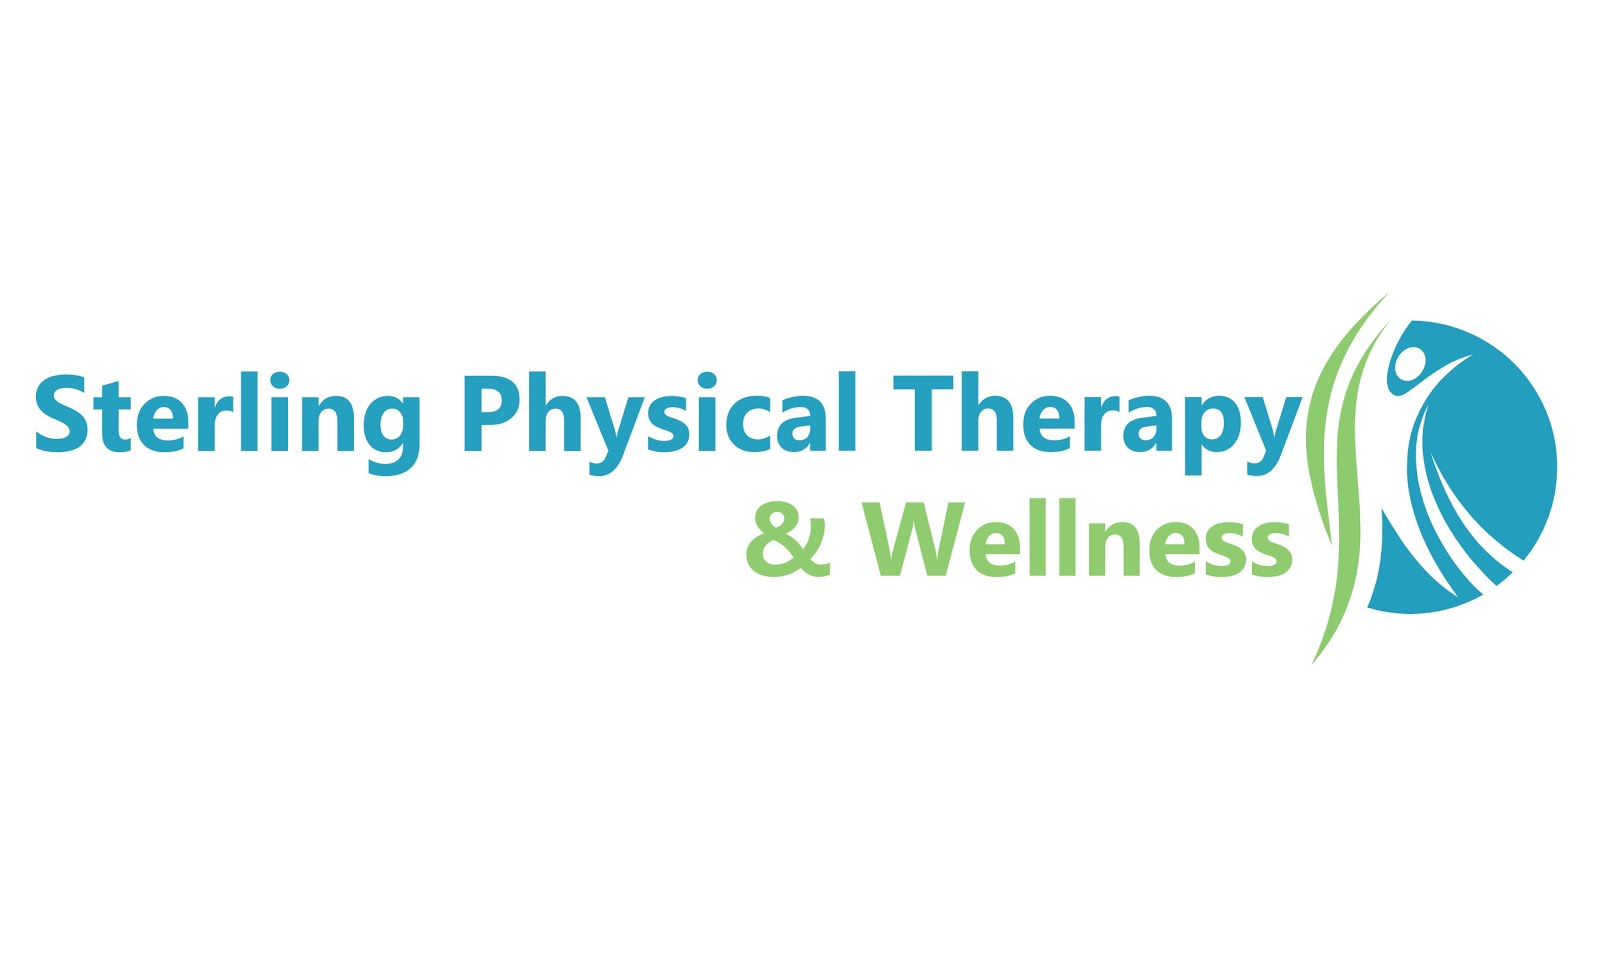 Sterling Physical Therapy & Wellness